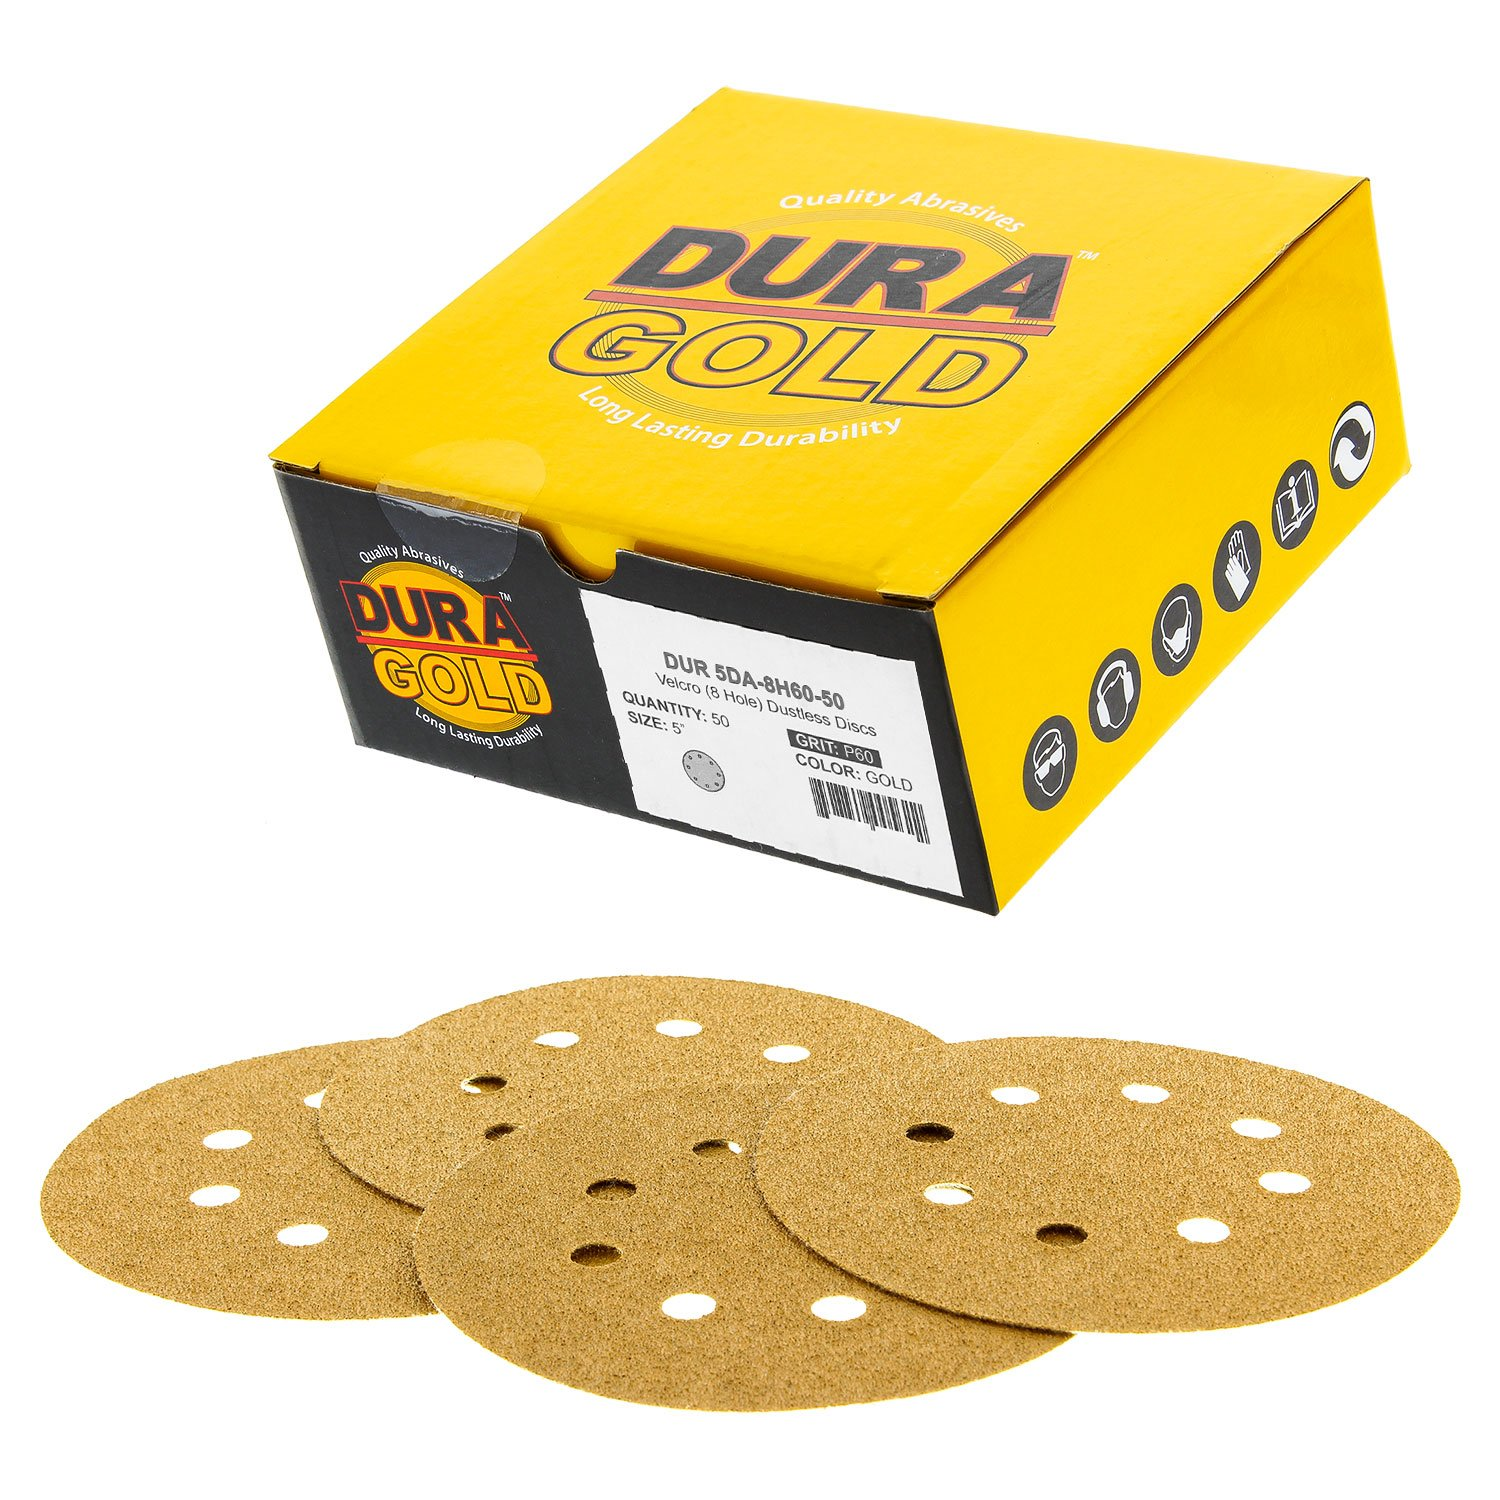 150 Grit Box of 50 Finishing Sandpaper Discs for Woodworking or Automotive Dura-Gold 8-Hole Dustless Hook and Loop for DA Sander 5 Gold Sanding Discs Premium